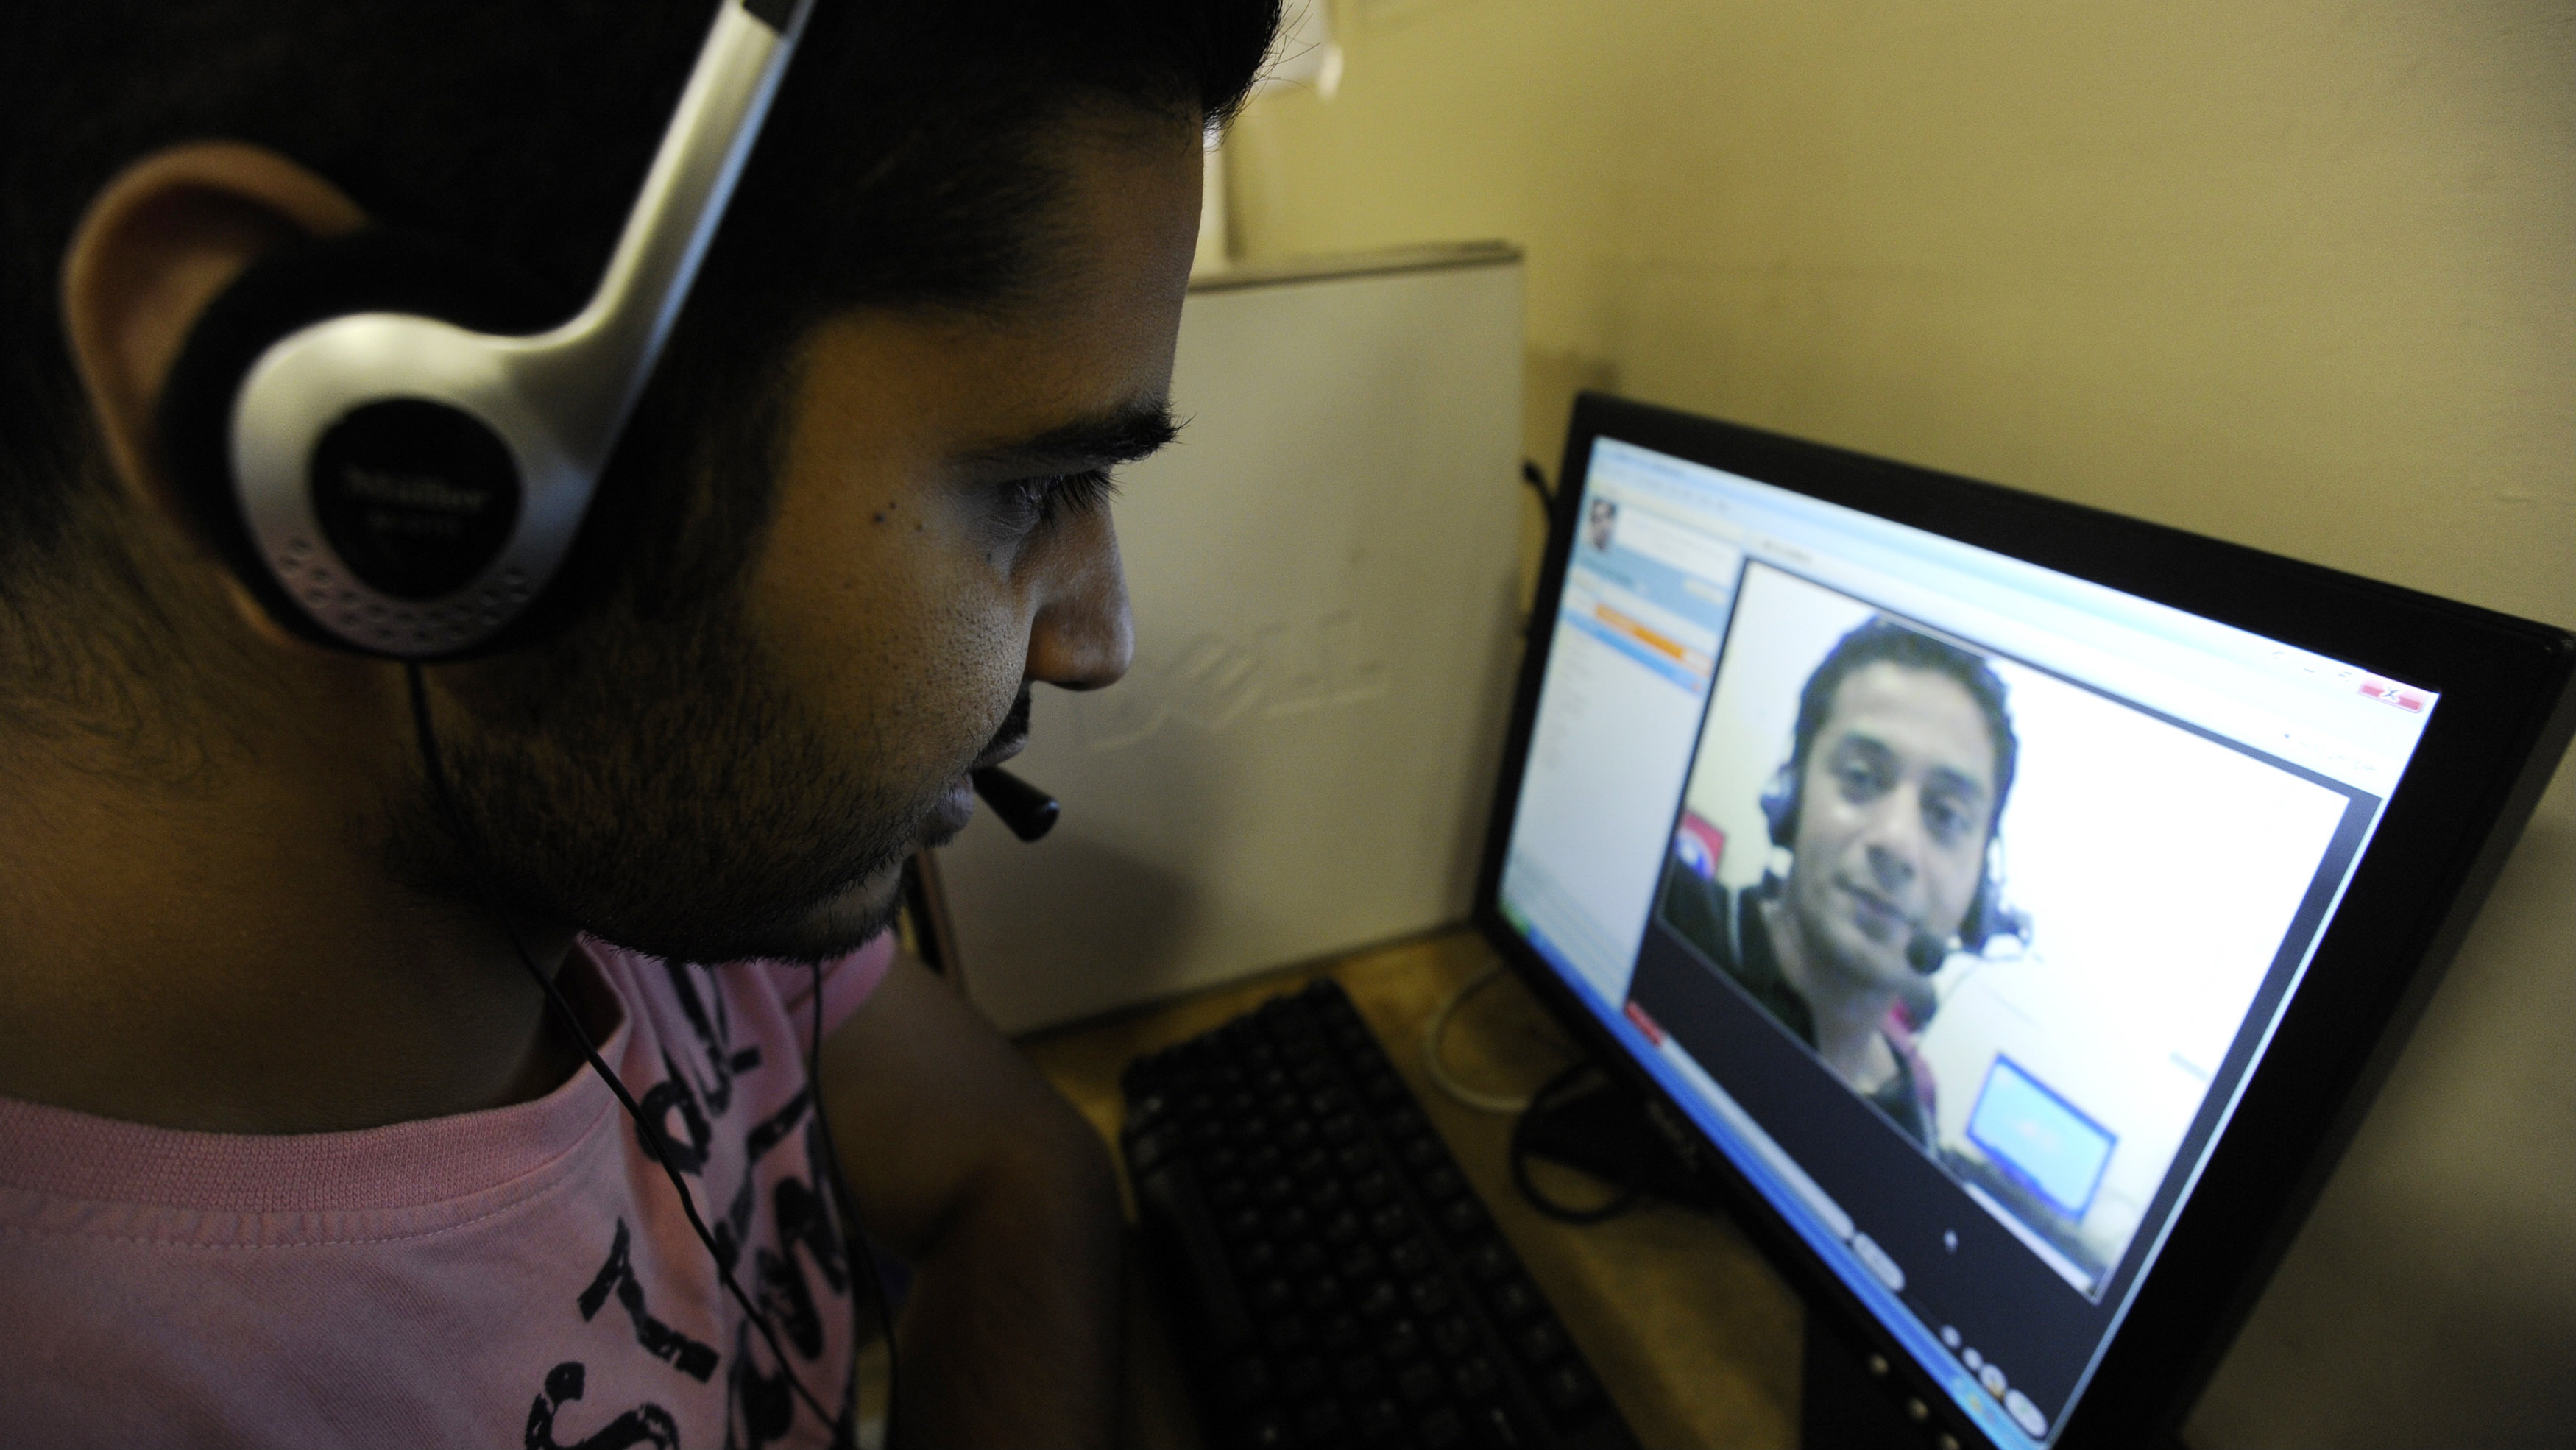 Zubair Ghumro (L) speaks to his friend Sheeraz Qazalbash using Skype software at an internet cafe in central London August 10, 2010. Internet phone services provider Skype filed to raise up to $100 million through an IPO, hoping that its wide name recognition and rapid growth will outweigh concerns that few of its customers actually pay.